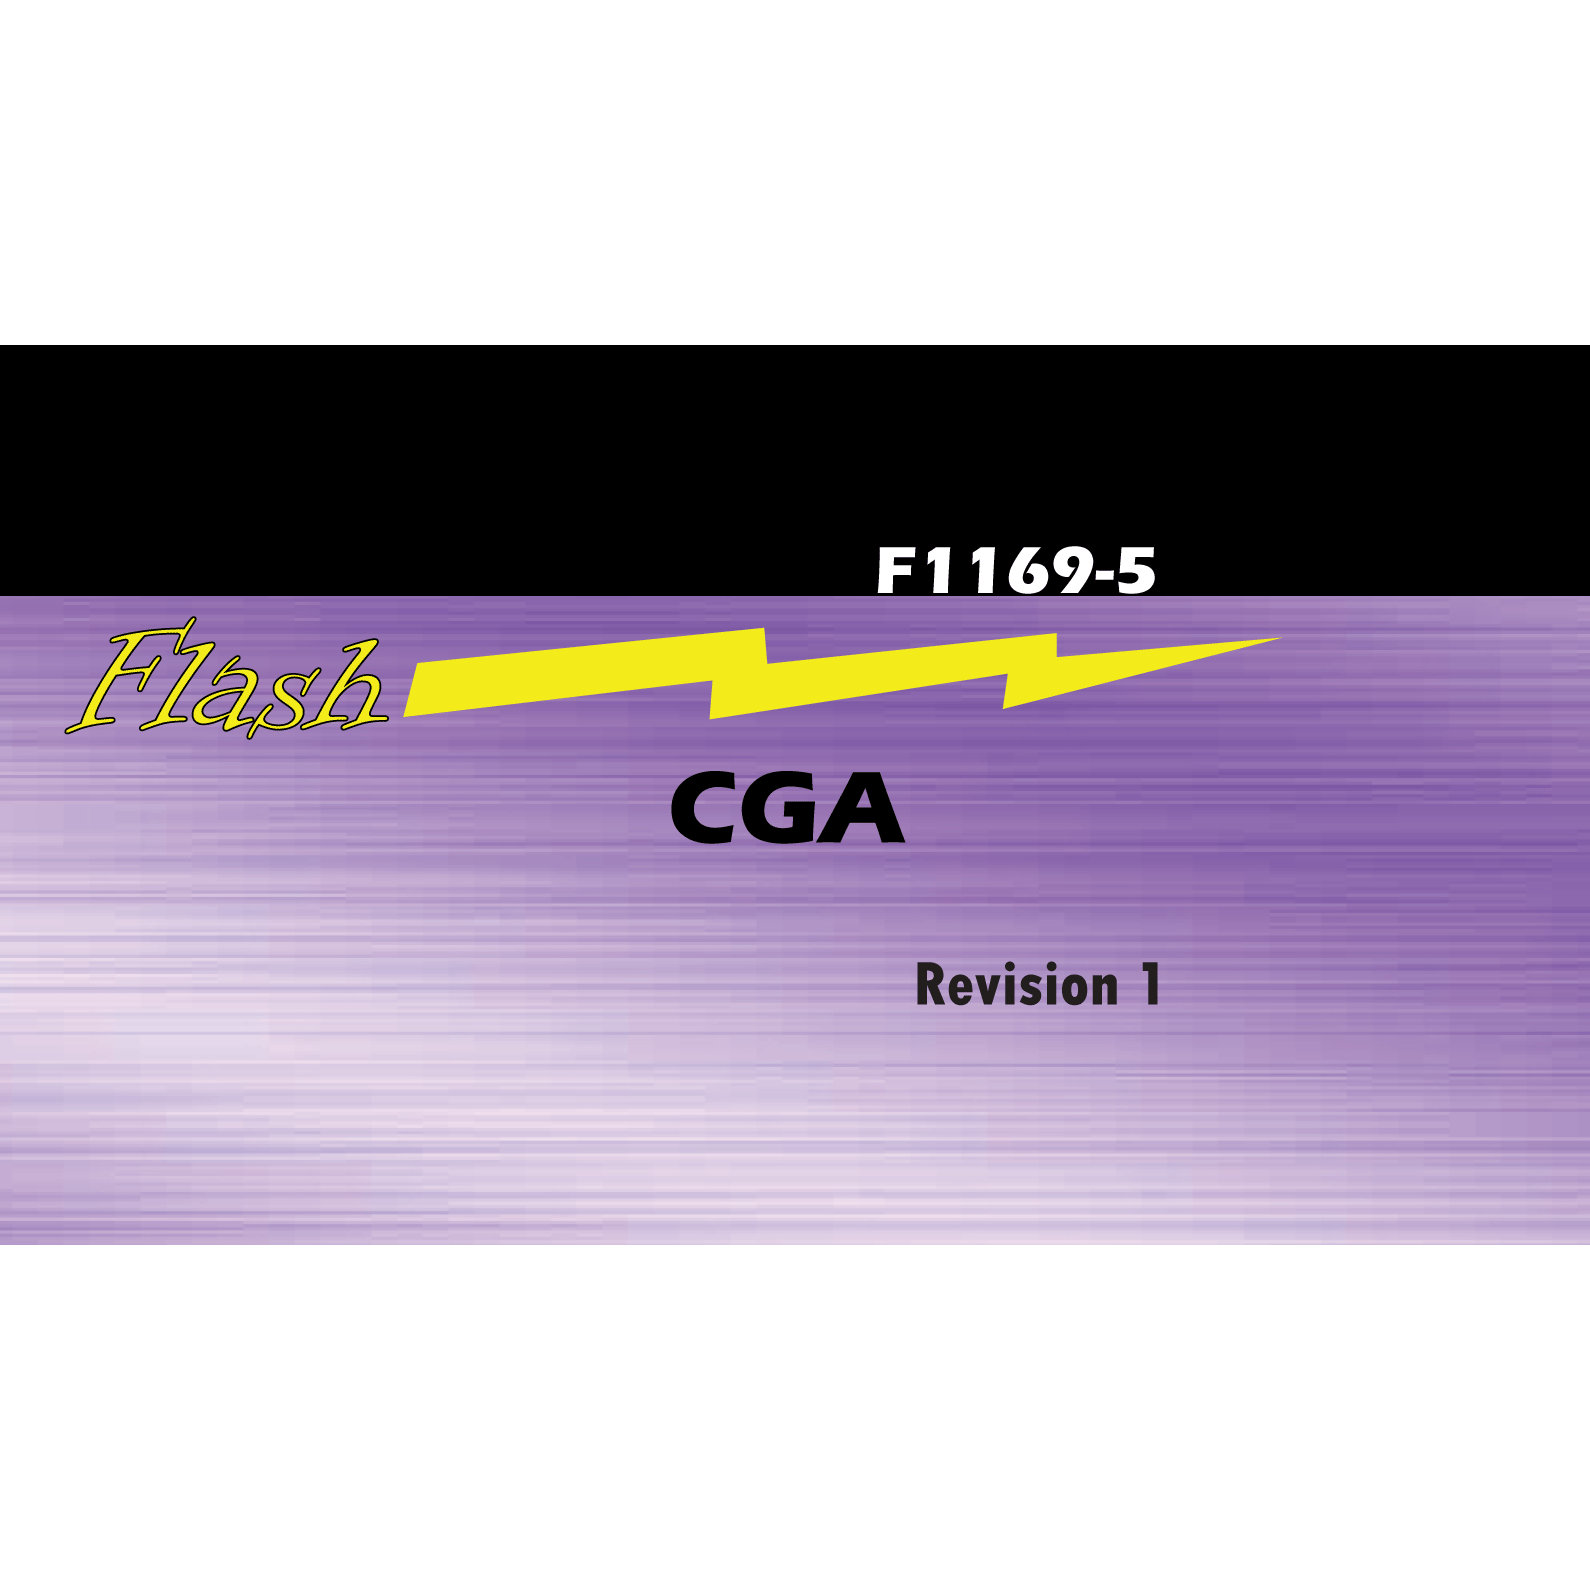 cga practice exam Cga-canada financial accounting 4 examination december 2005 marks time: 4 hours notes: 1 2 3 4 5 6 7 30 all calculations must be shown in an orderly manner to .